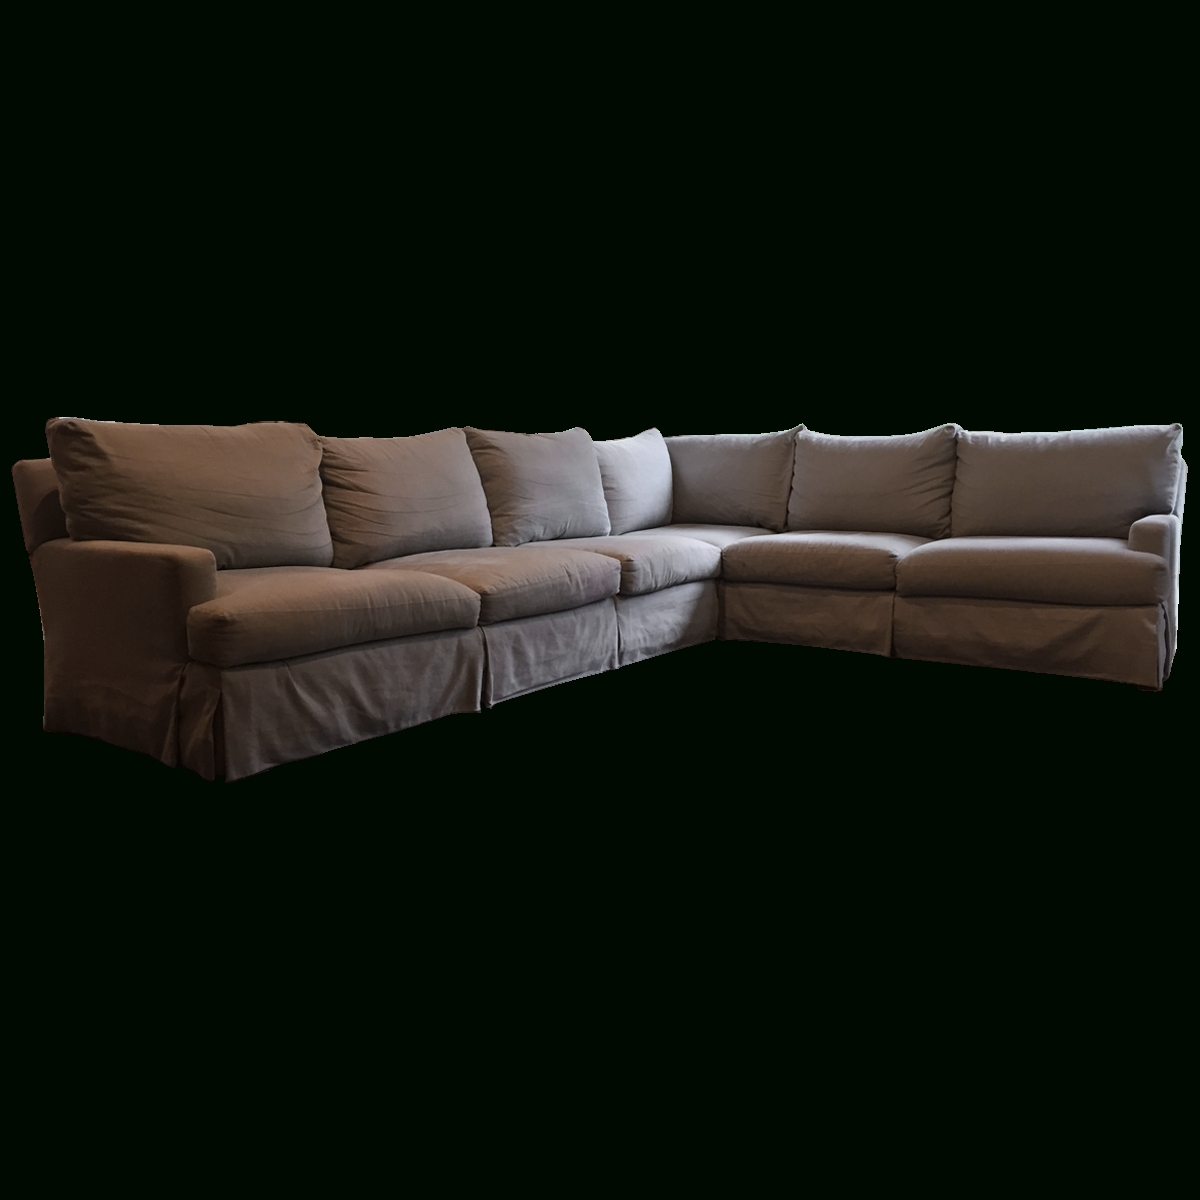 Lee Industries Sectional Sofas Throughout Well Known Viyet – Designer Furniture – Seating – Lee Industries Linen Blend (View 8 of 15)